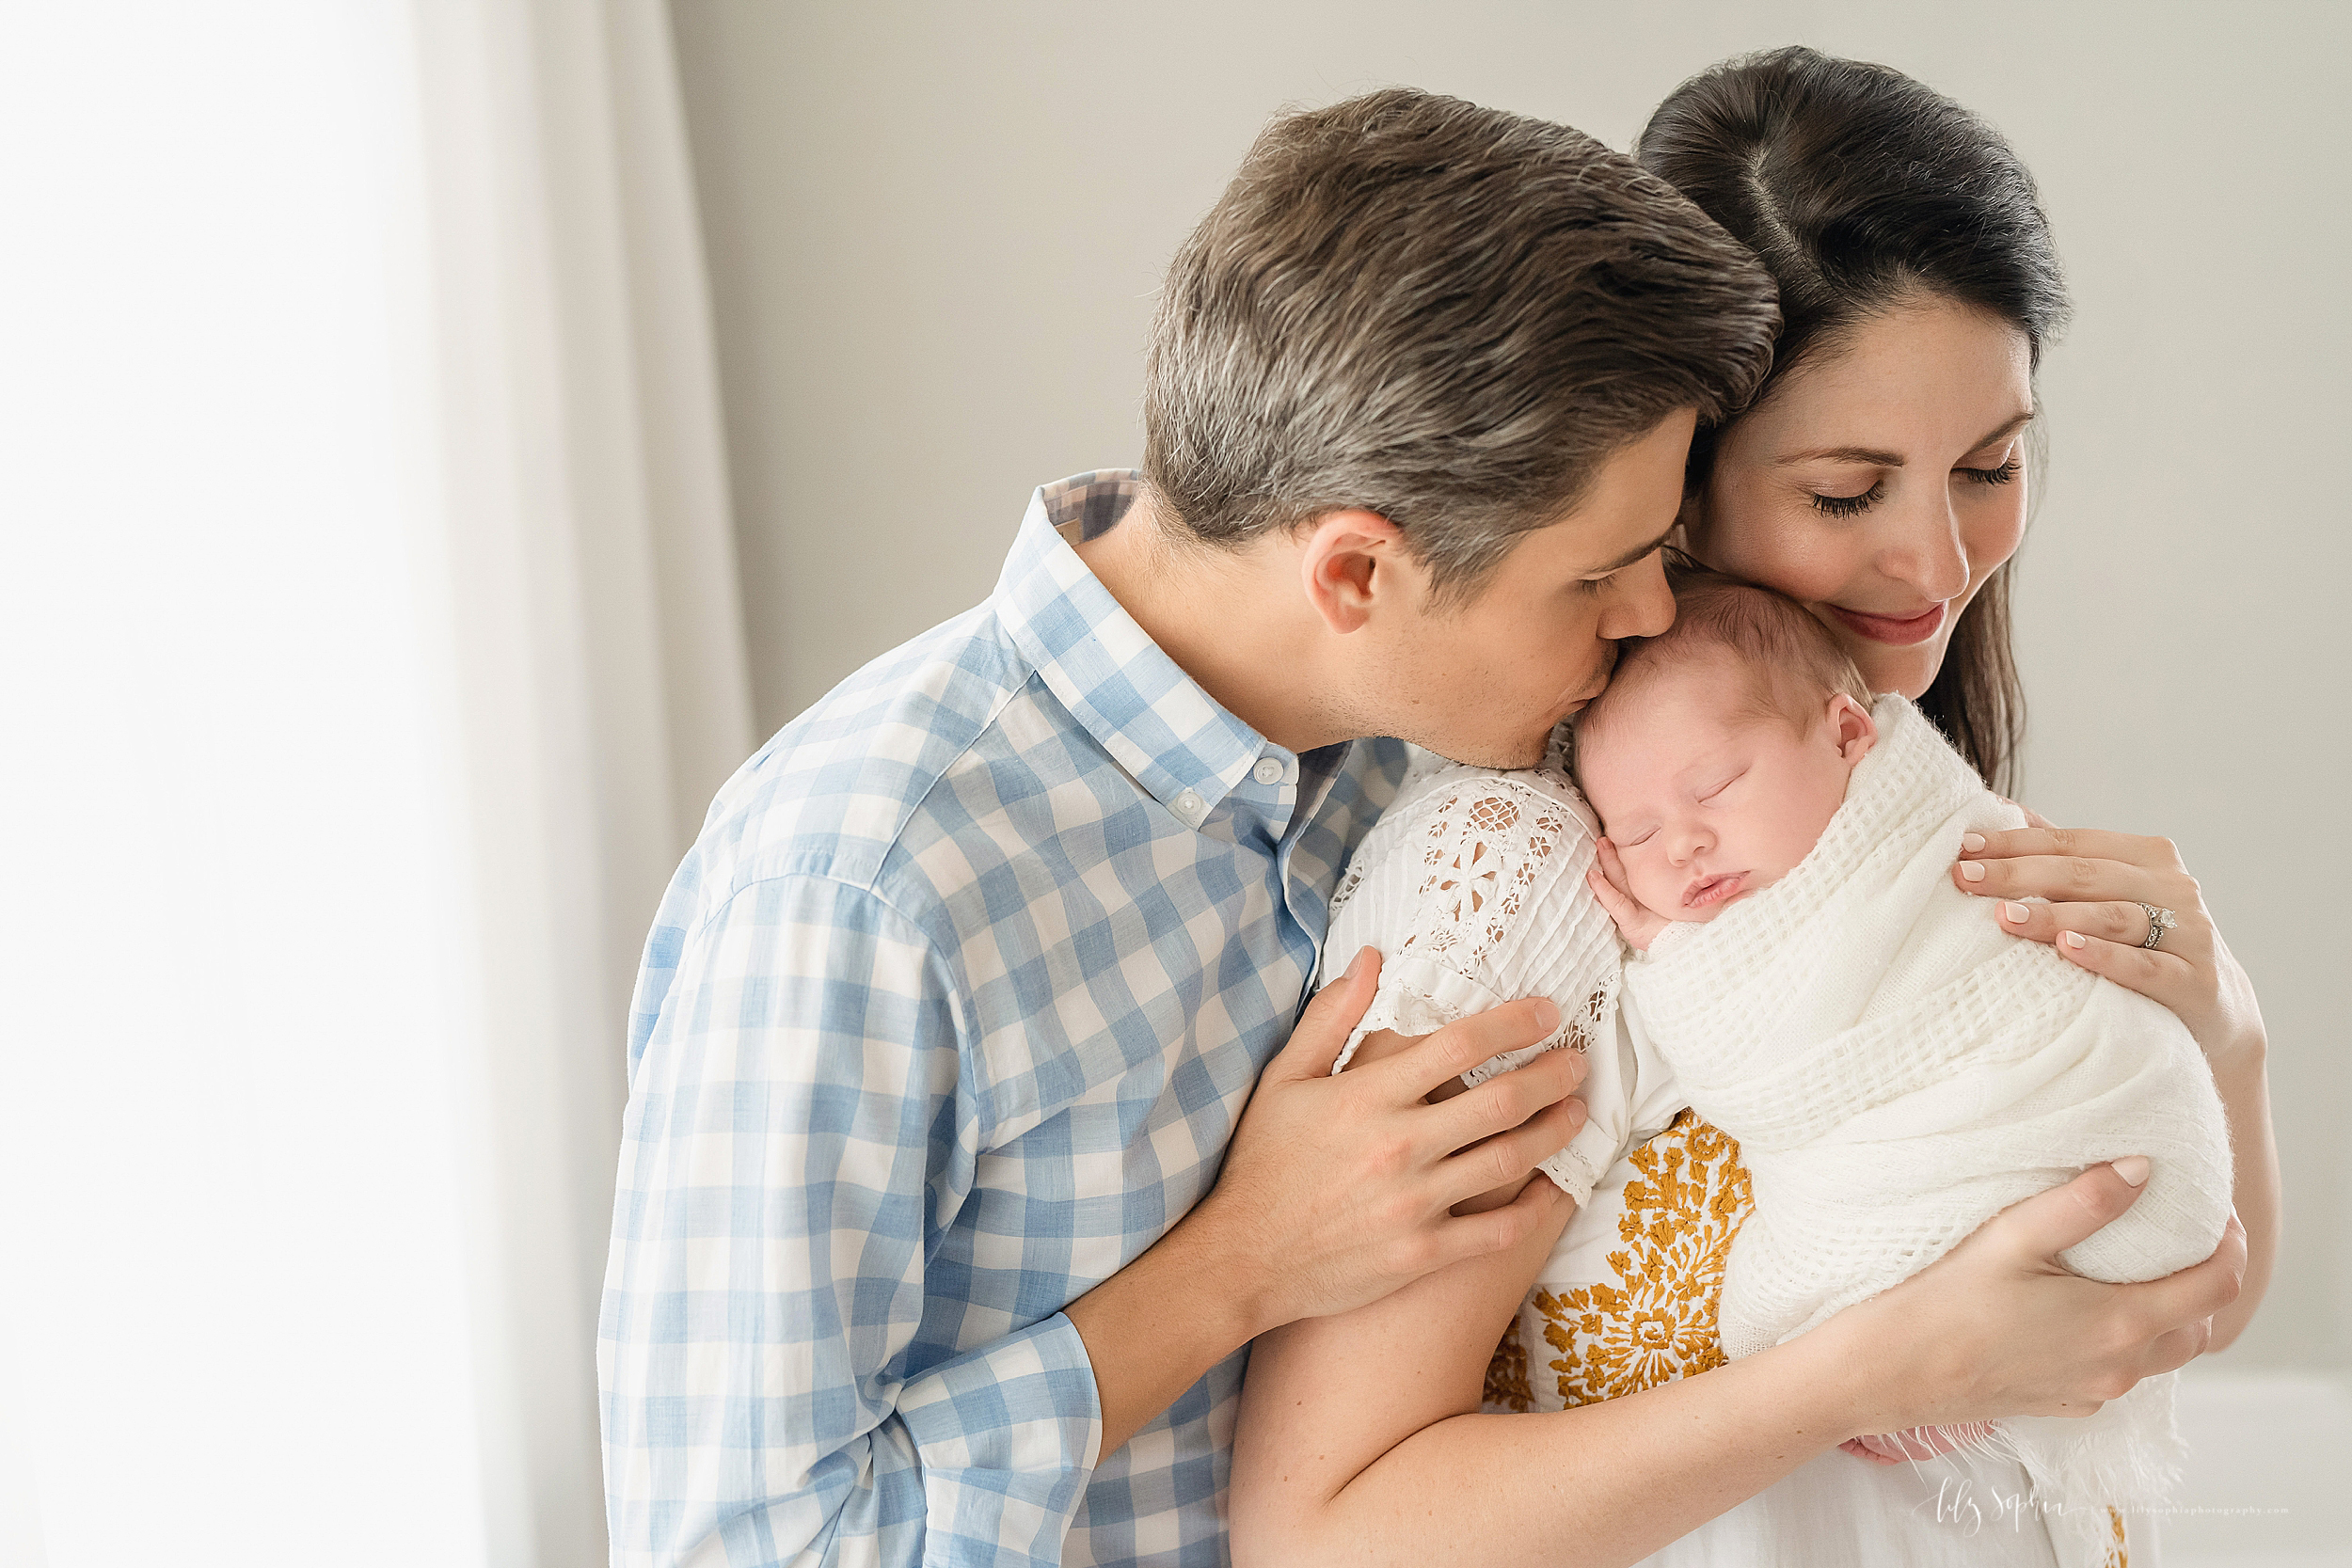 Family photo of a mom and dad snuggling with their contented newborn daughter as they stand in an Atlanta studio holding her.